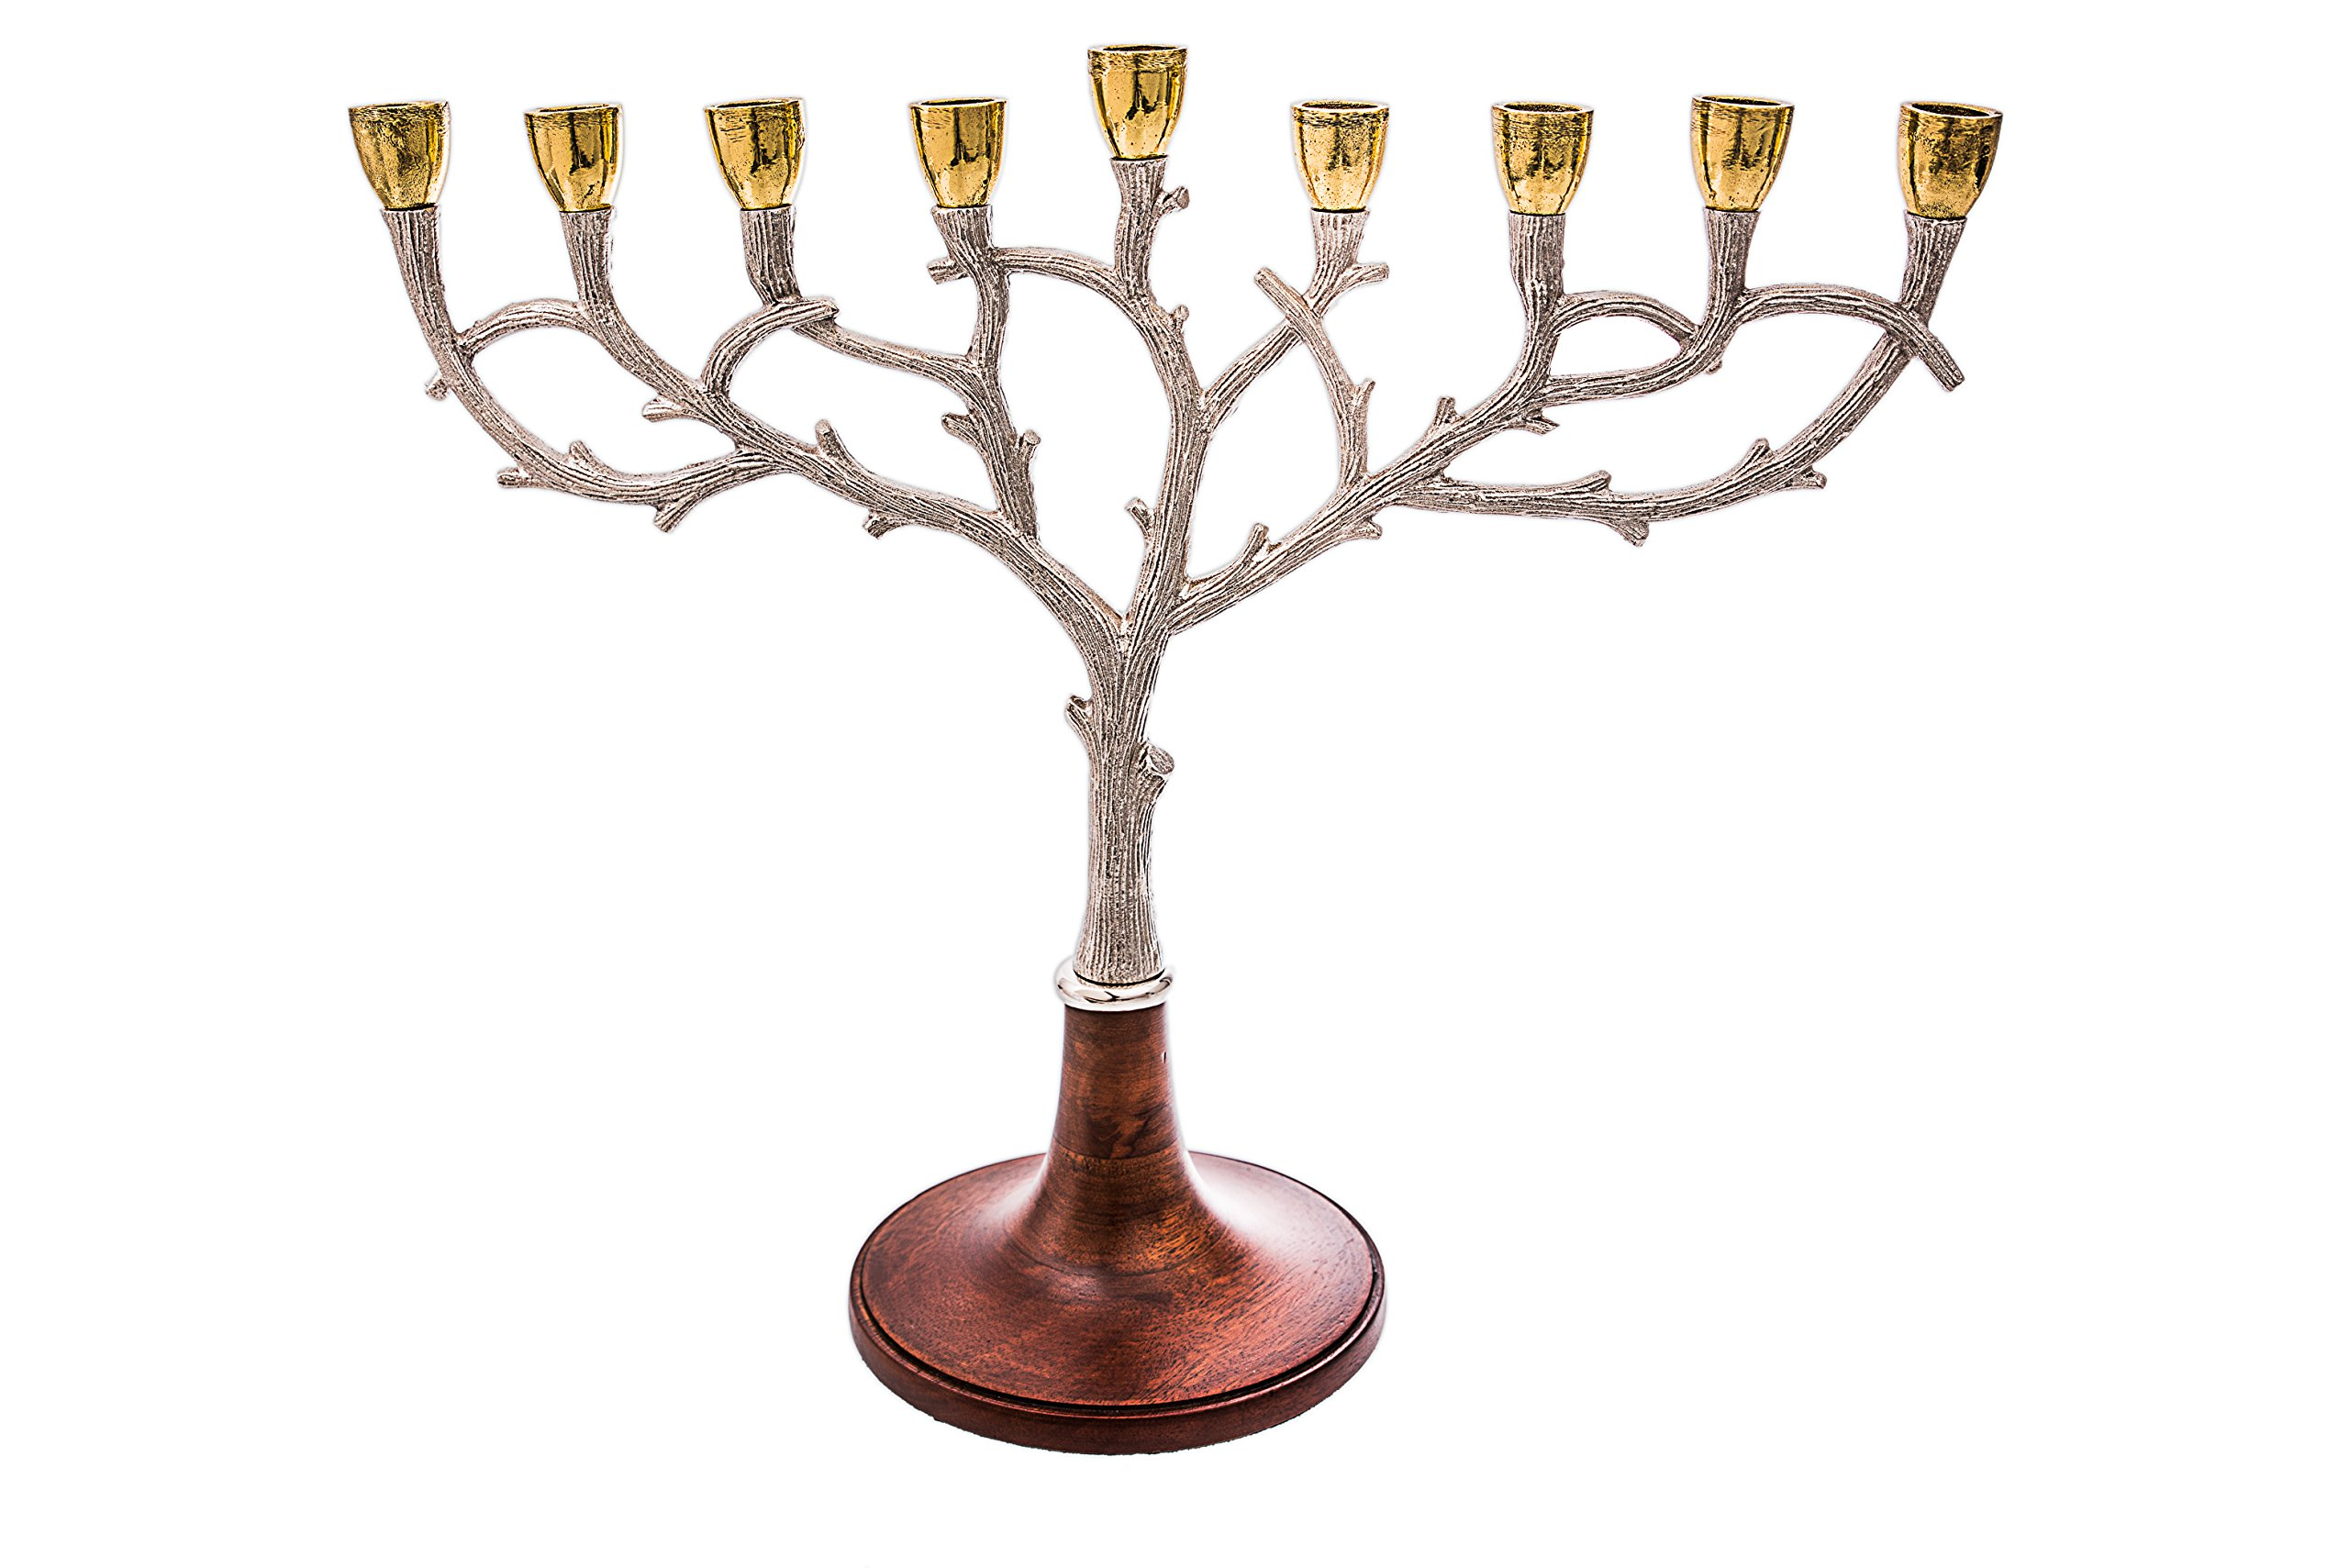 Stunning Hammered Aluminum Stainless Steel Two Tone Oil Hanukkah Menorah with Gold Leaf Accent